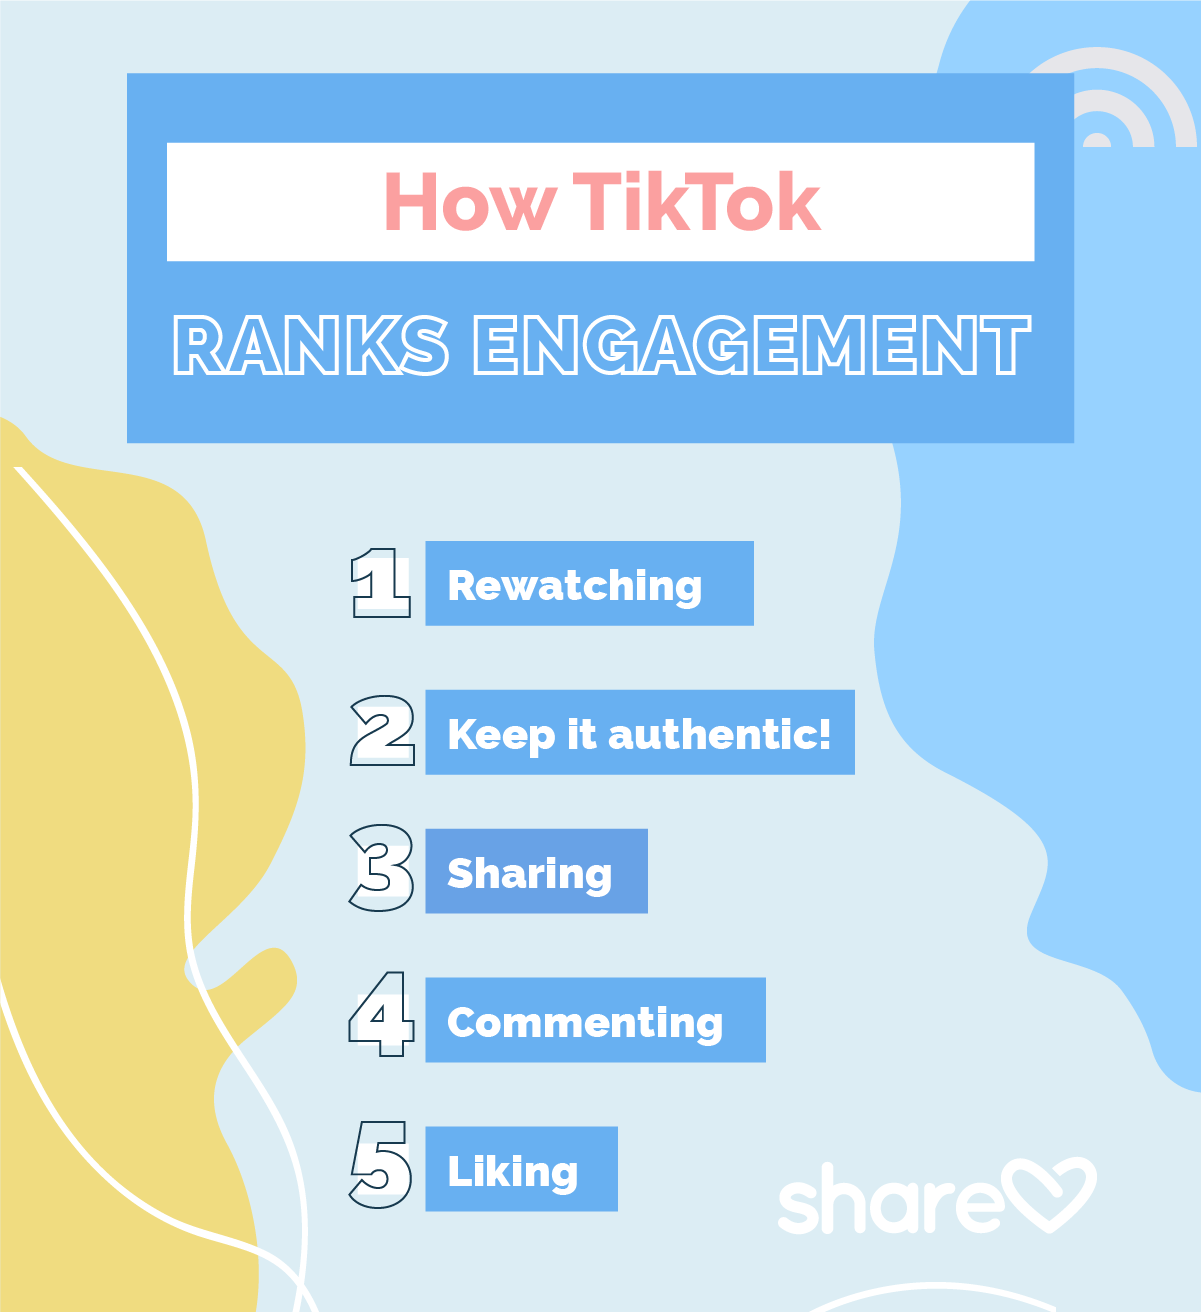 Artwork 1 - How TikTok ranks engagement